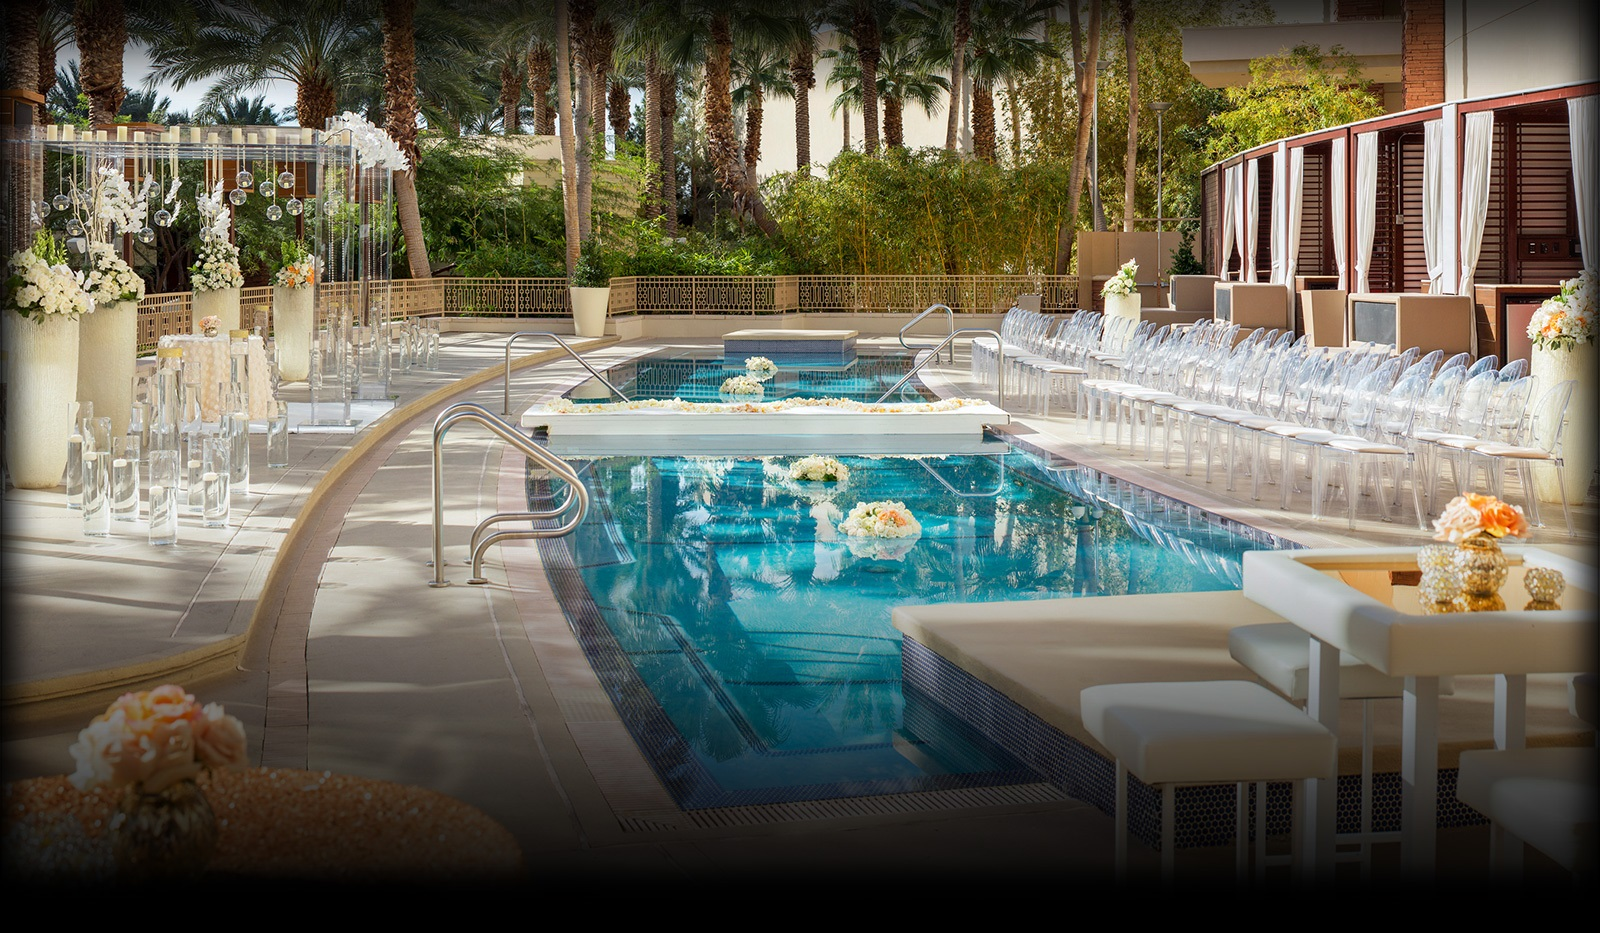 Las Vegas Hotel Wedding Packages All Inclusive